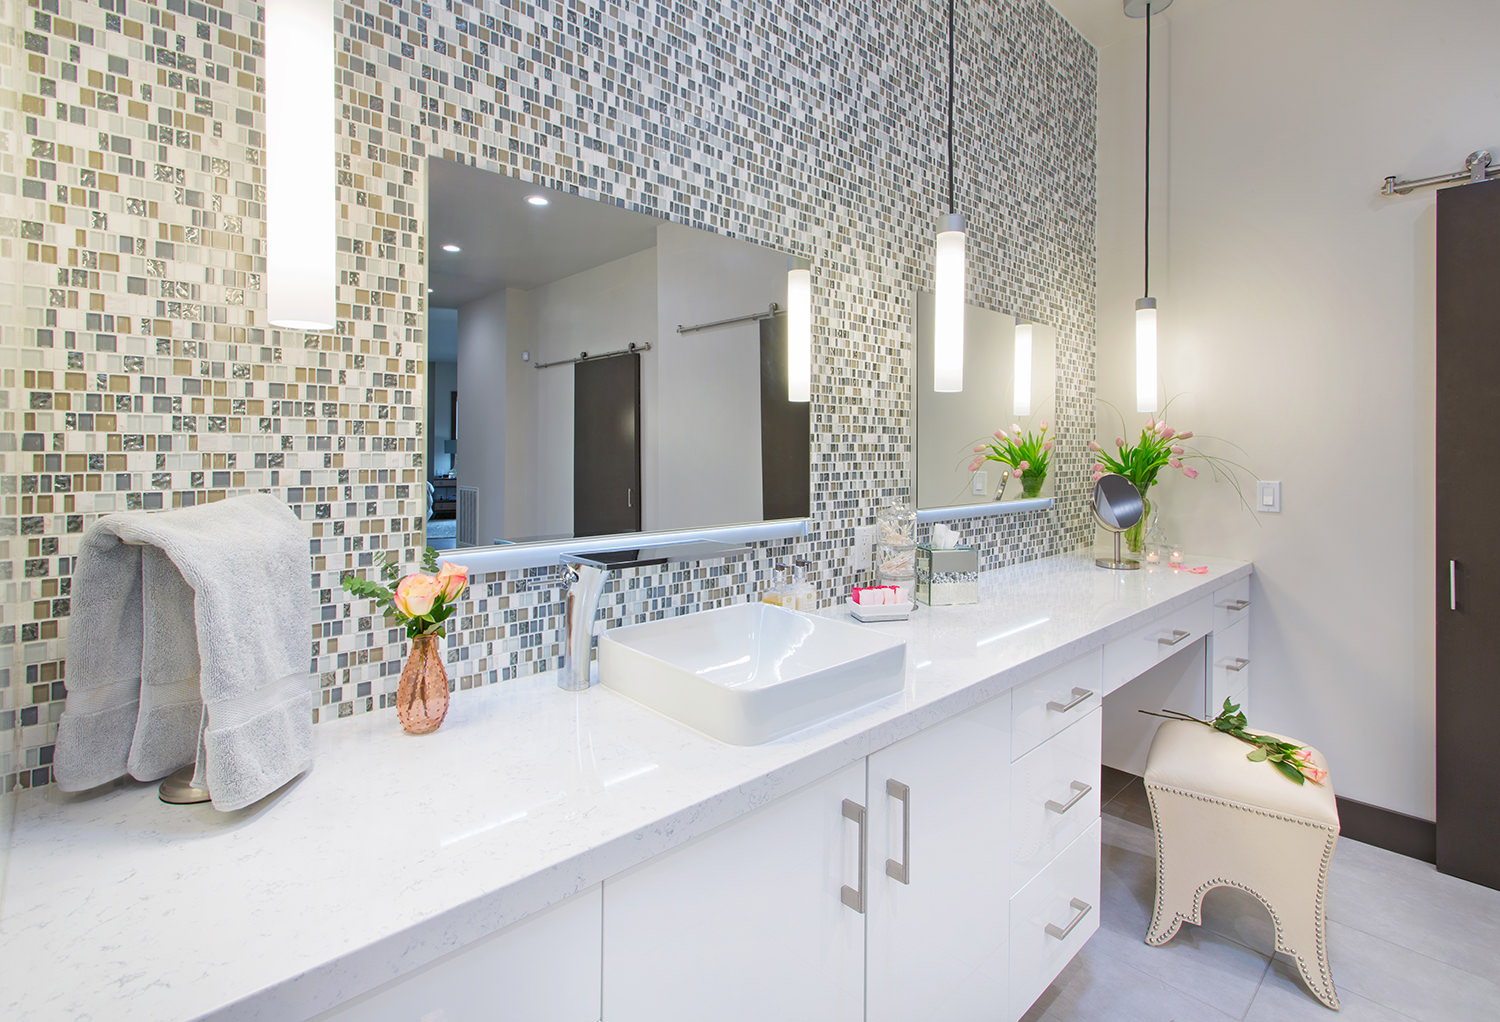 bathroom-interior-design-los-altos-california-ktj-design-co-17.jpg